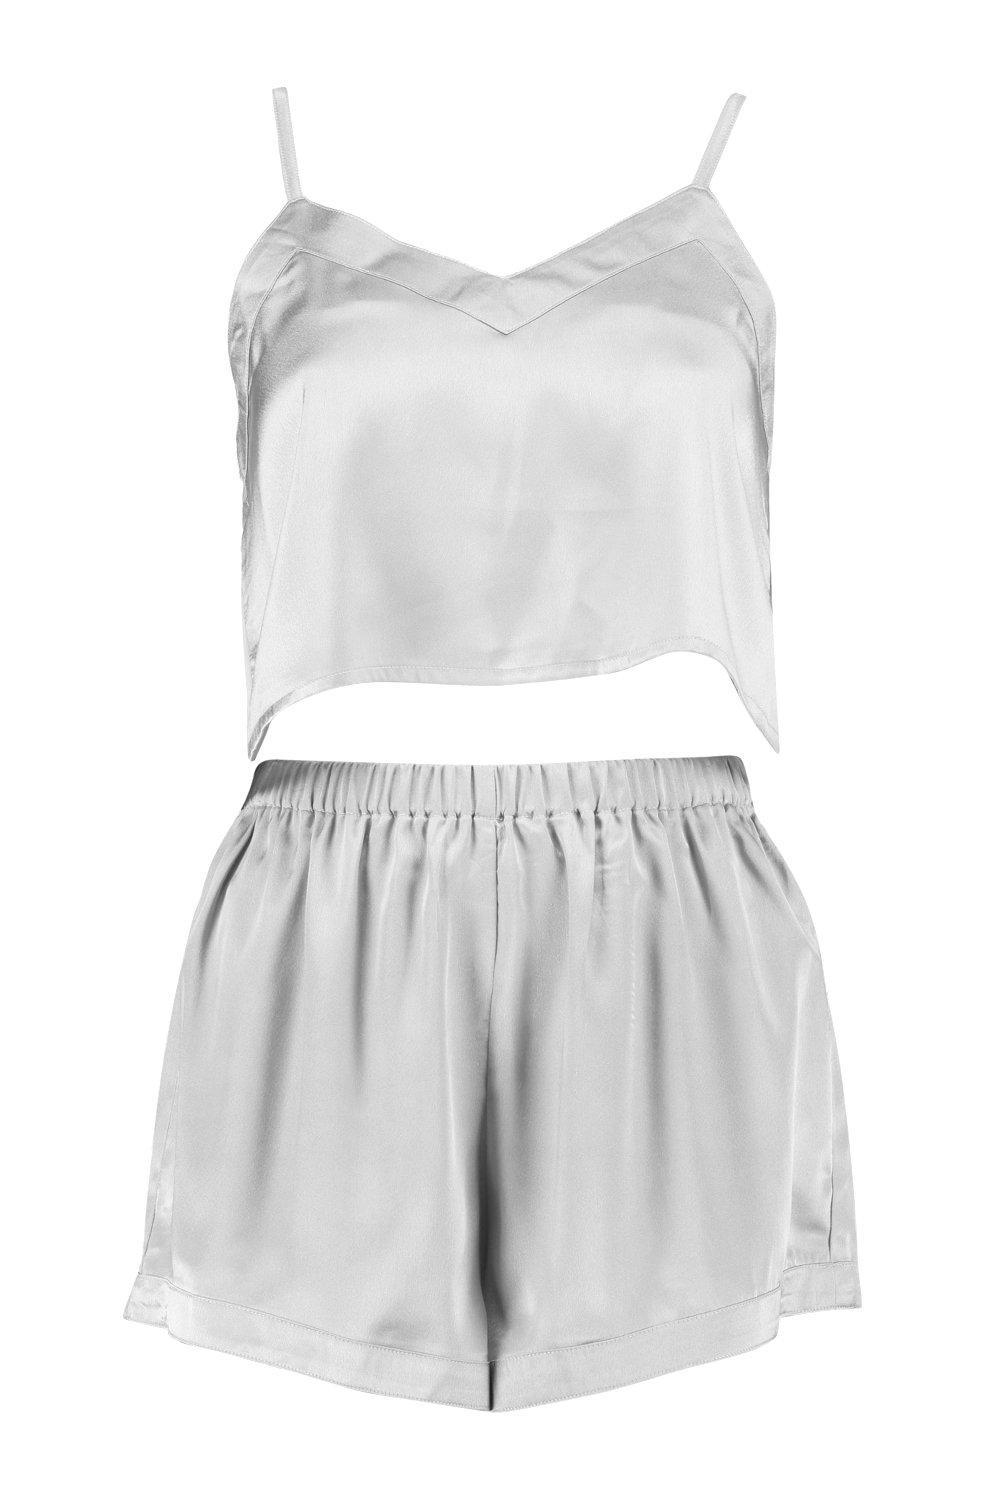 b8a72d4ee8 Lyst - Boohoo Satin Crop Vest And Shorts Night Set in Gray